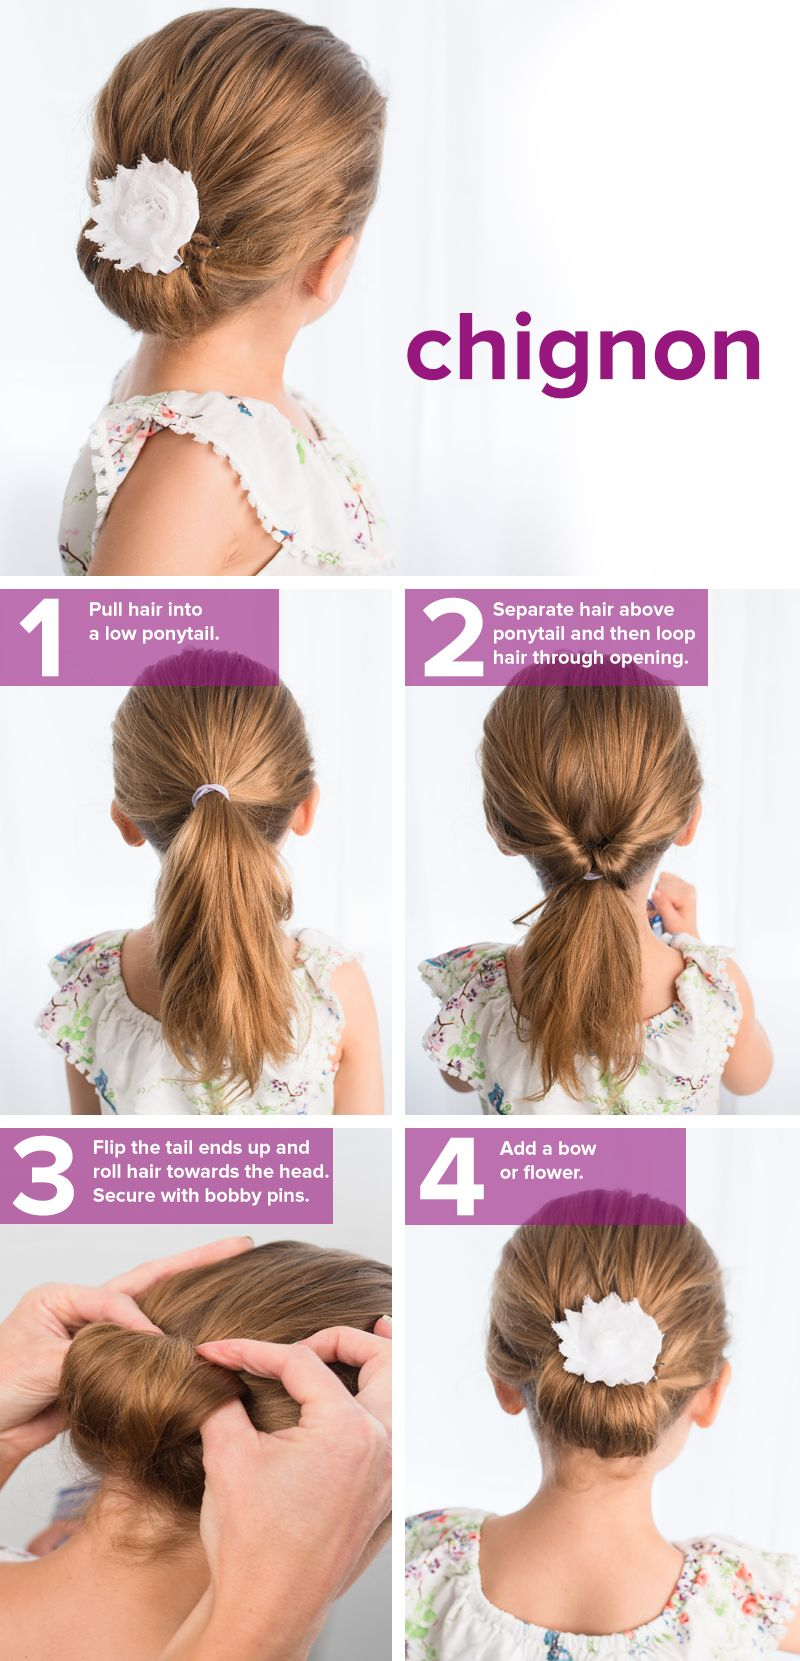 Easy Cute Hairstyles Endearing 5 Fast Easy Cute Hairstyles For Girls  Pinterest  Chignon Hair